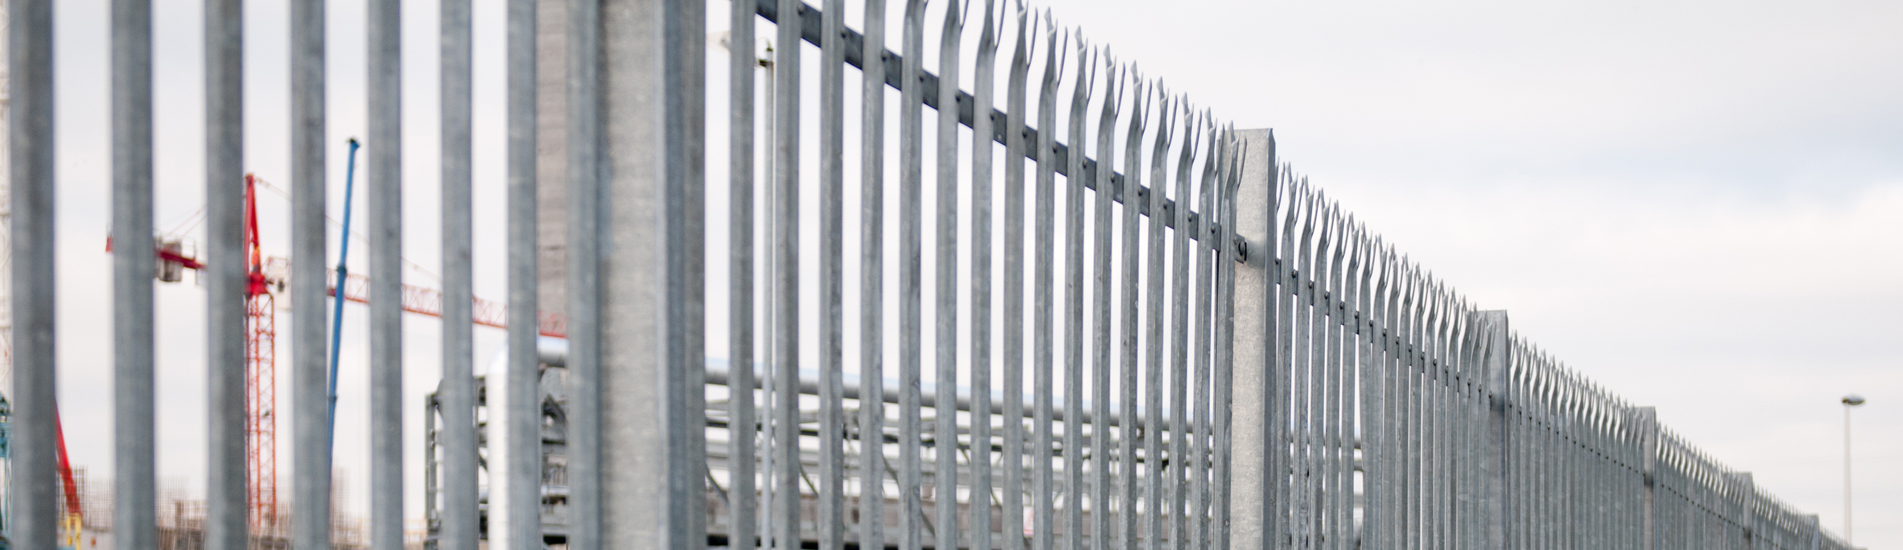 Allway Security Systems | Electric Fencing Specialists Durban | Palisade